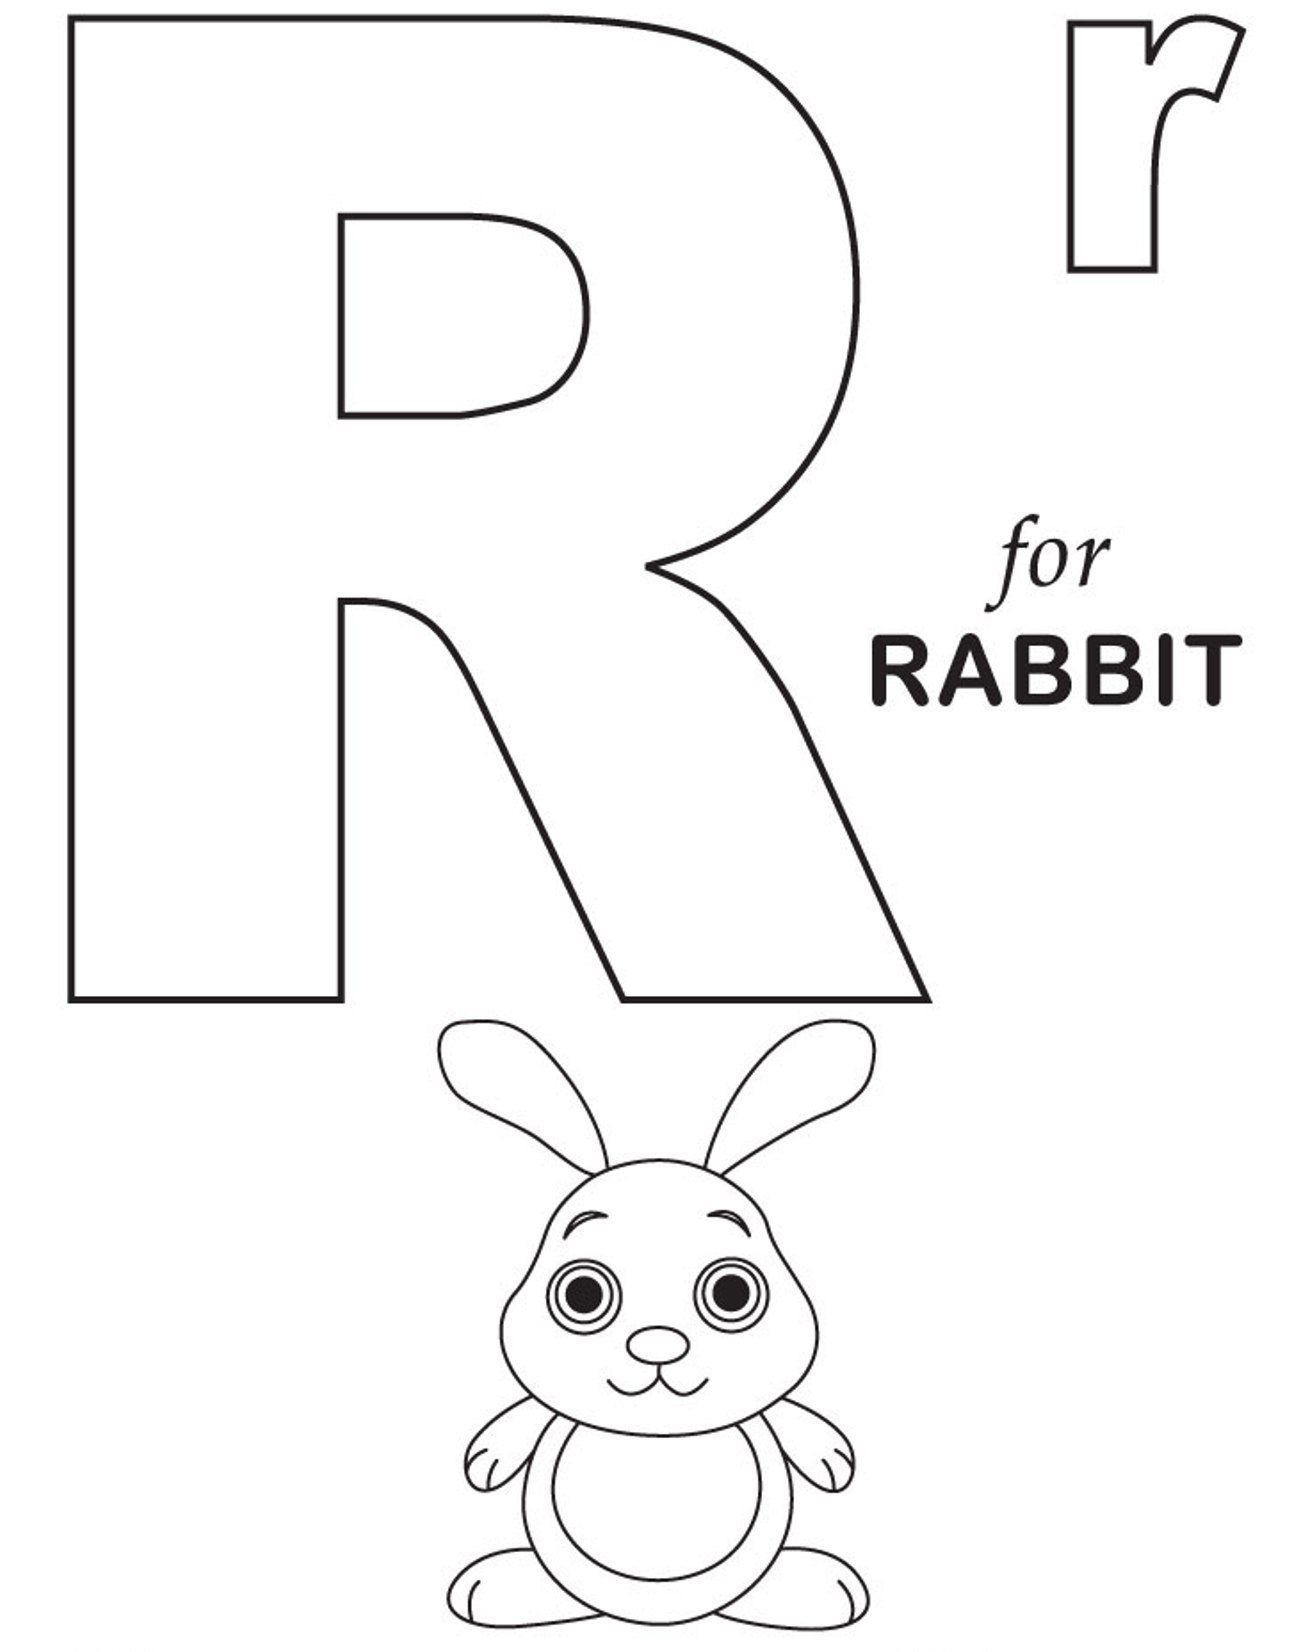 R For Rabbit Free Alphabet Coloring Pages | Alphabet regarding Alphabet Colouring Worksheets